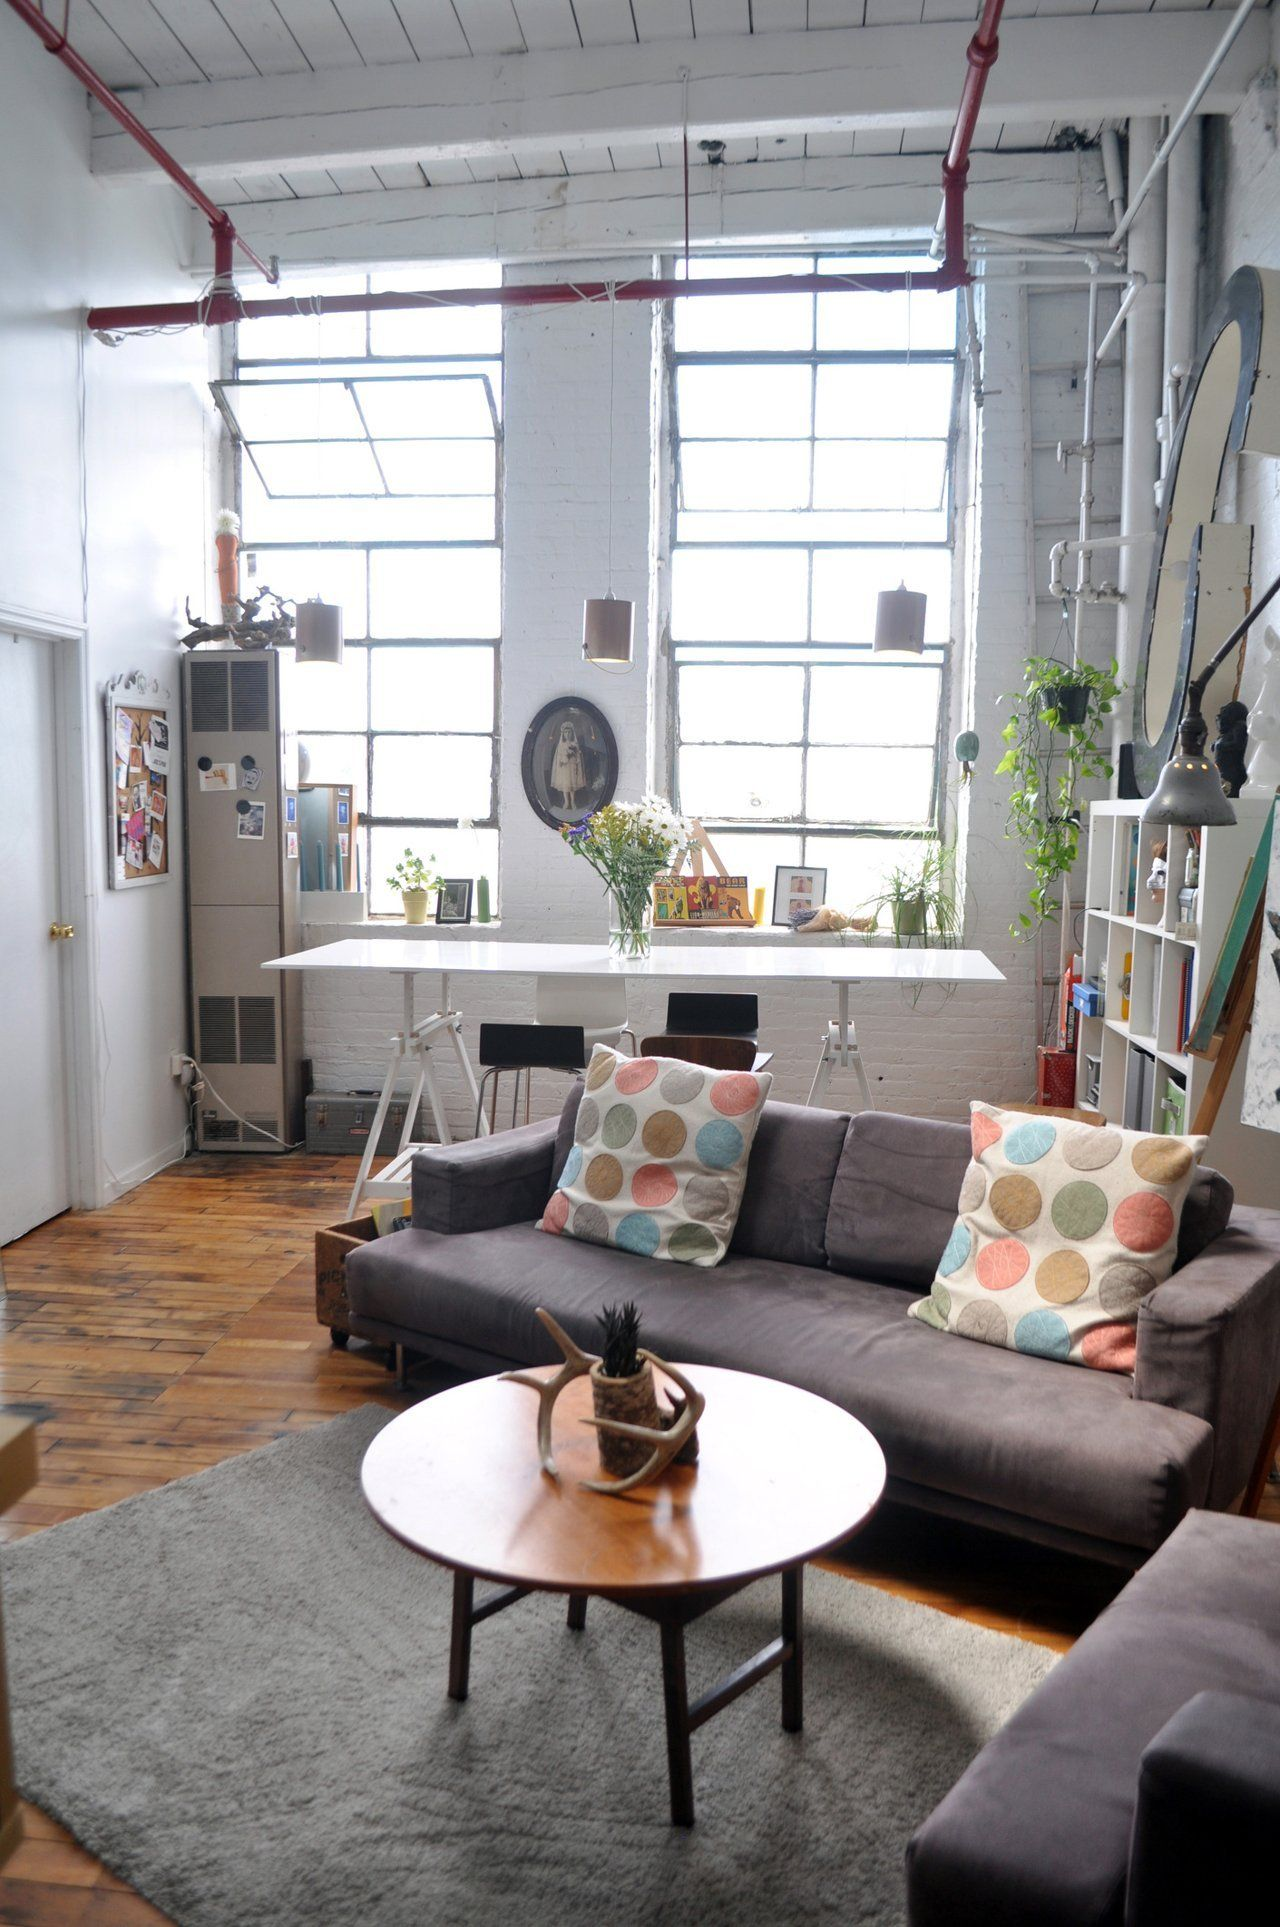 House Tour A Bright Brooklyn Loft Full of Art